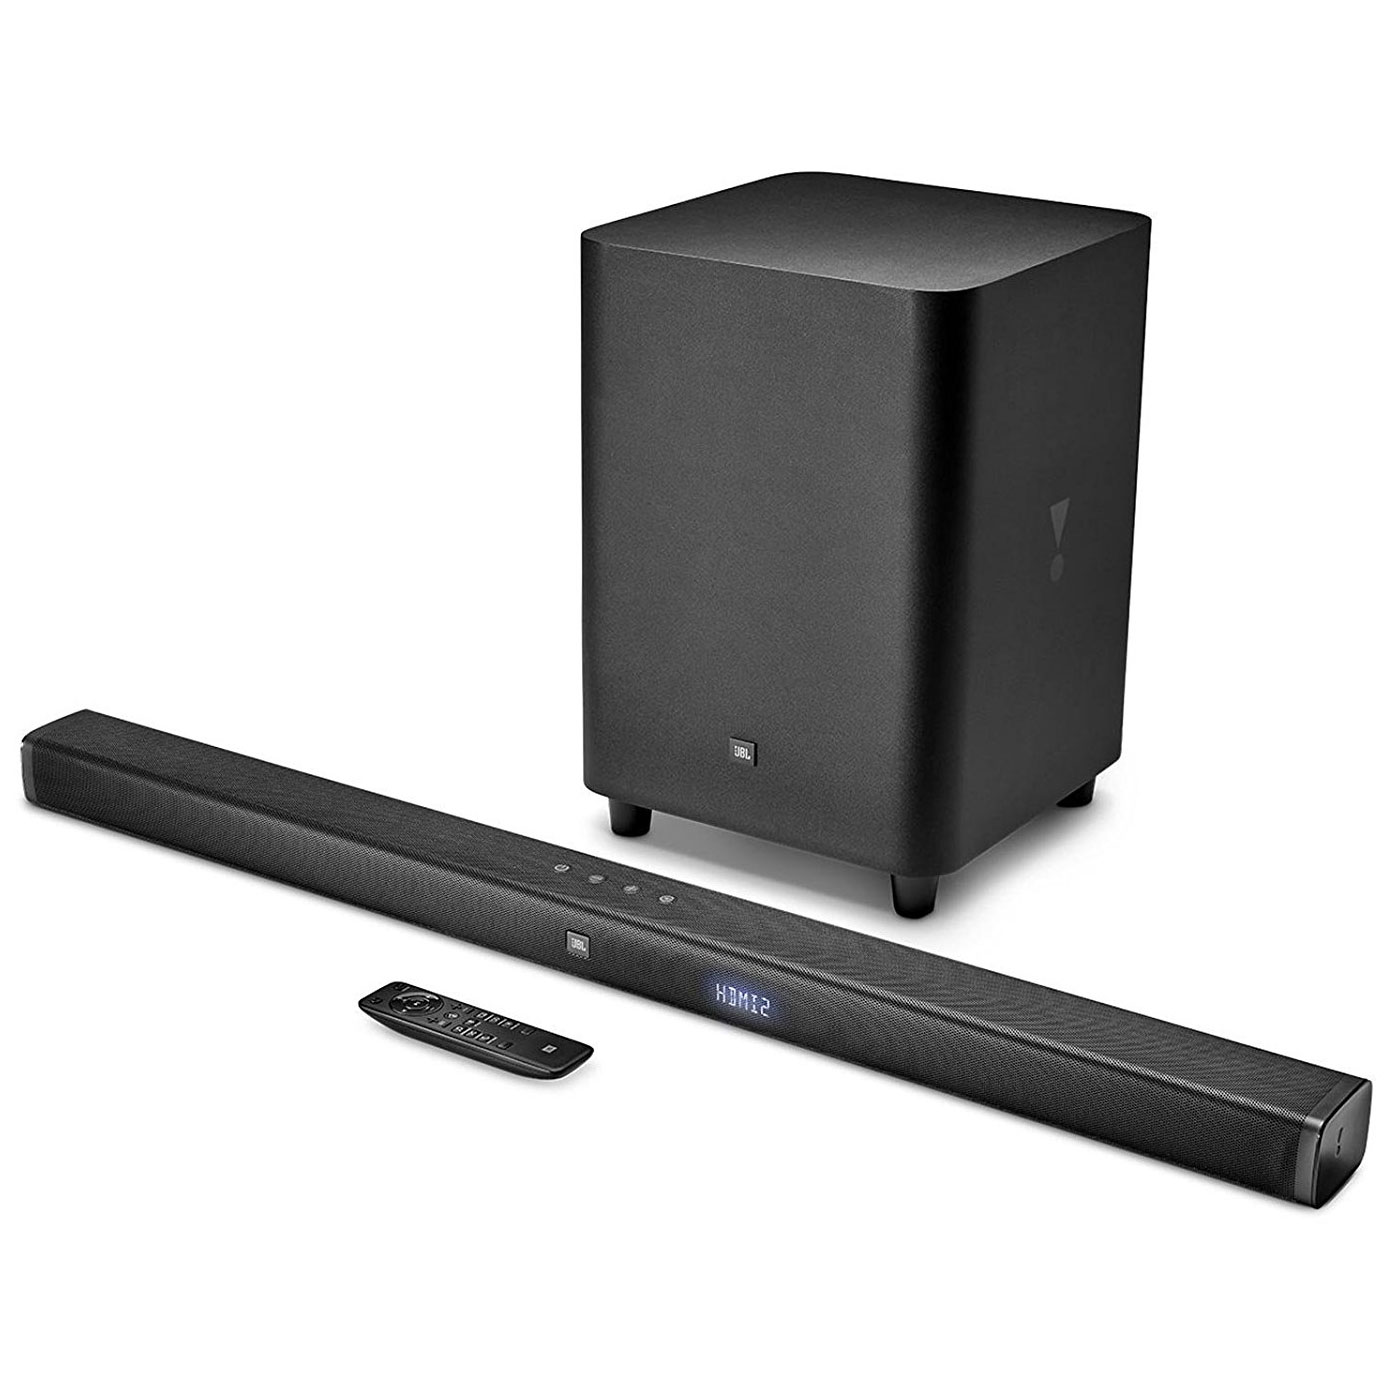 Barre de son JBL Bar 3.1 Barre de son 3.1 Ultra HD 4K 450W - Bluetooth - HDMI/USB - Caisson de basses sans fil